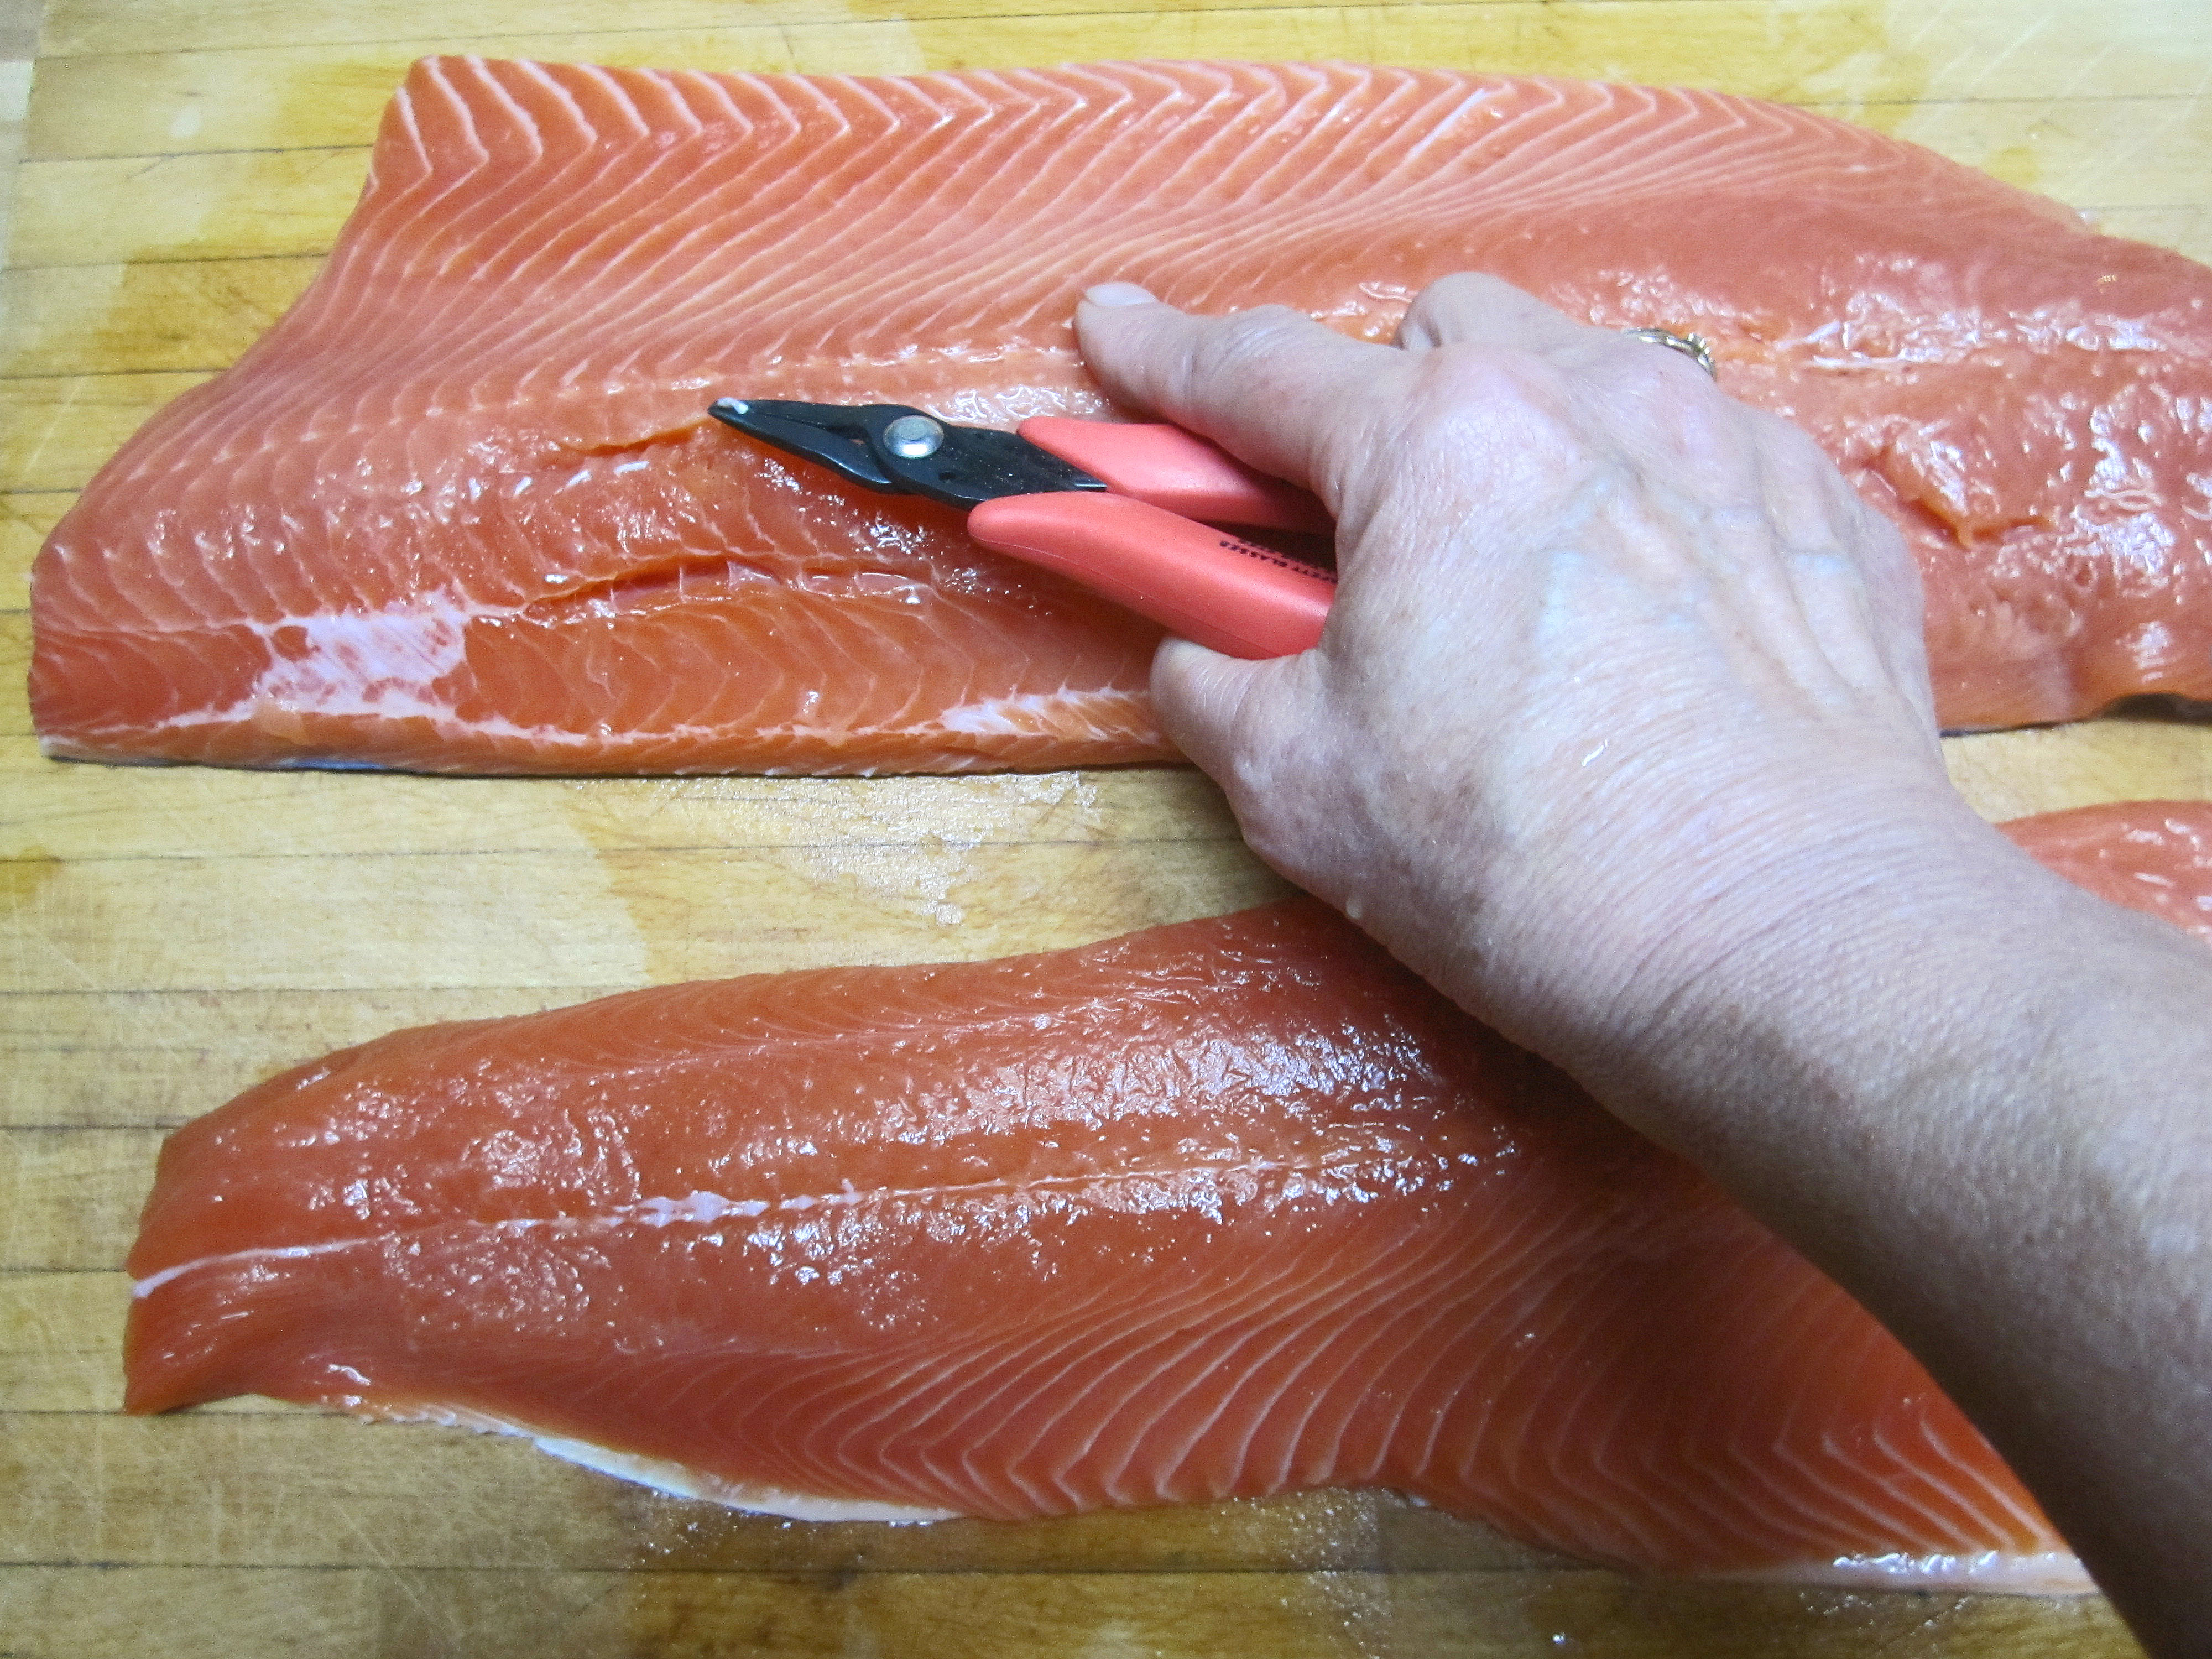 Once All The Bones Were Removed I Put The Salmon Face Down On A Baking  Sheet That Had 2 Tablespoons Of Extra Virgin Olive Oil Poured Onto It